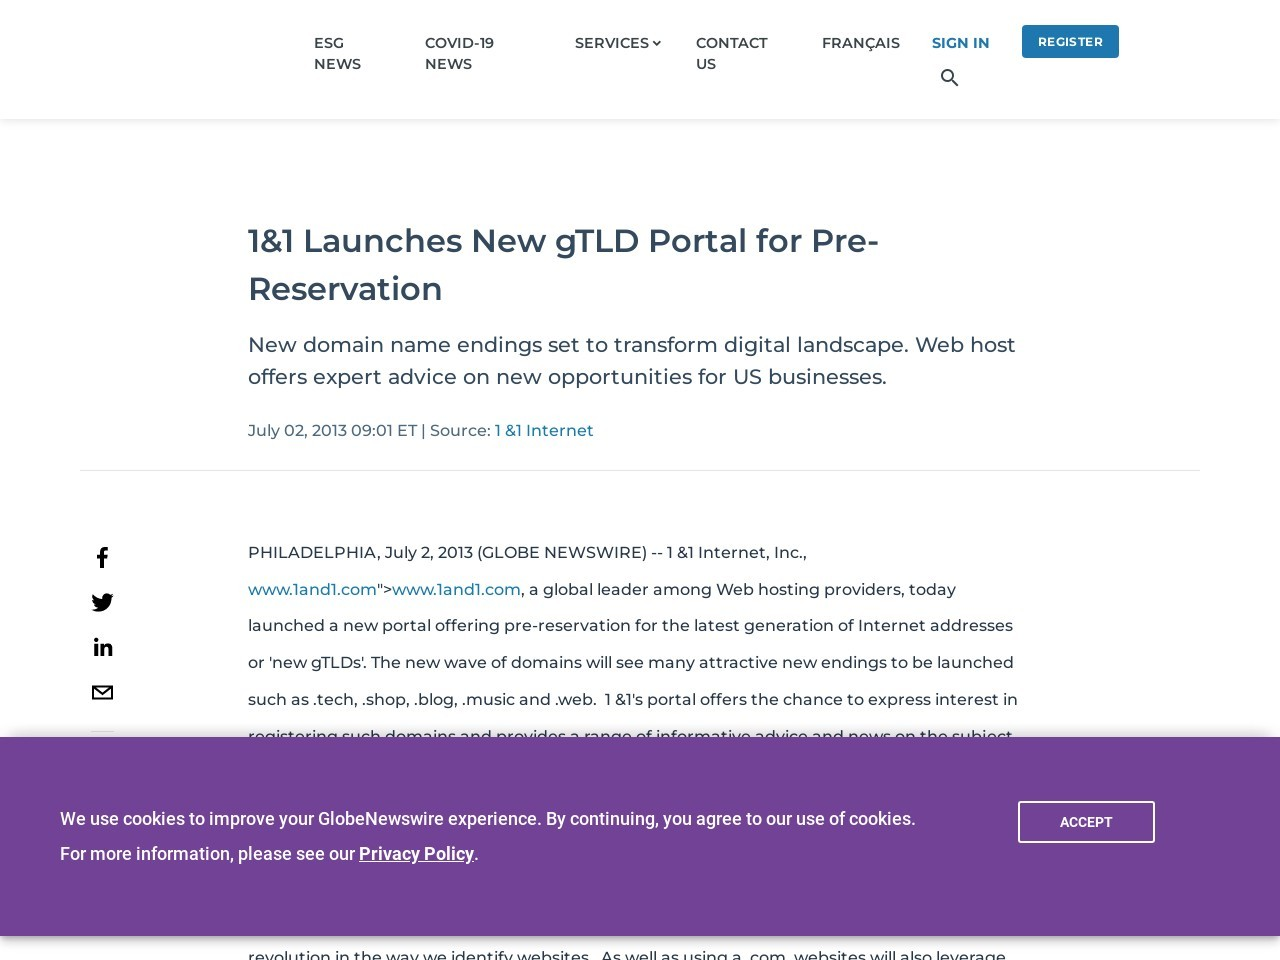 1&1 Launches New gTLD Portal for Pre-Reservation